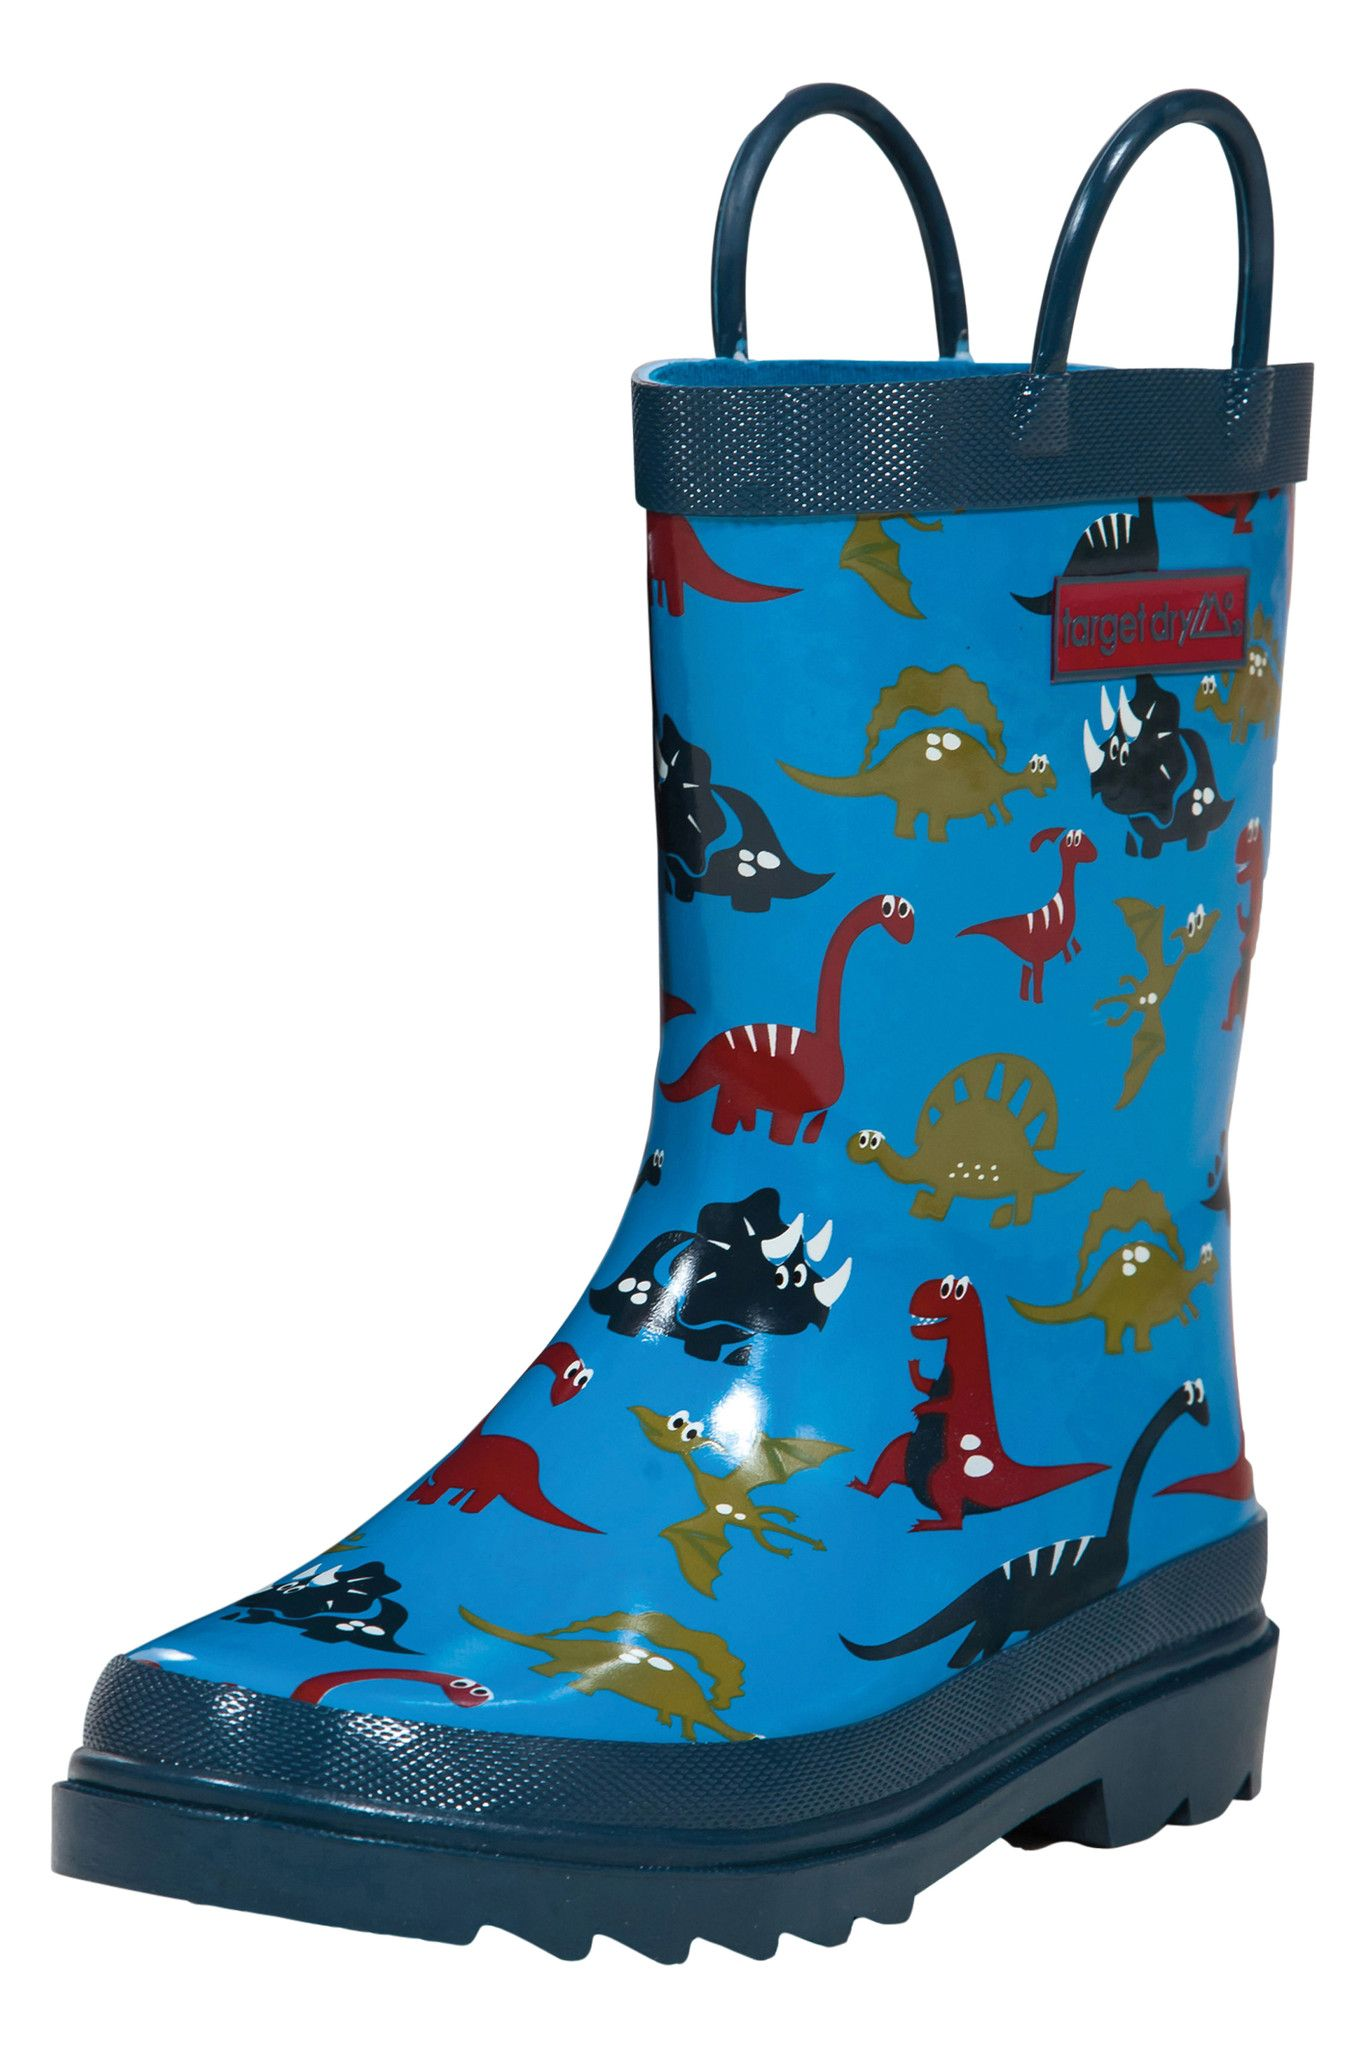 2a8ee5b51915 ... Target Dry Max Boys Rubber Welly Boots